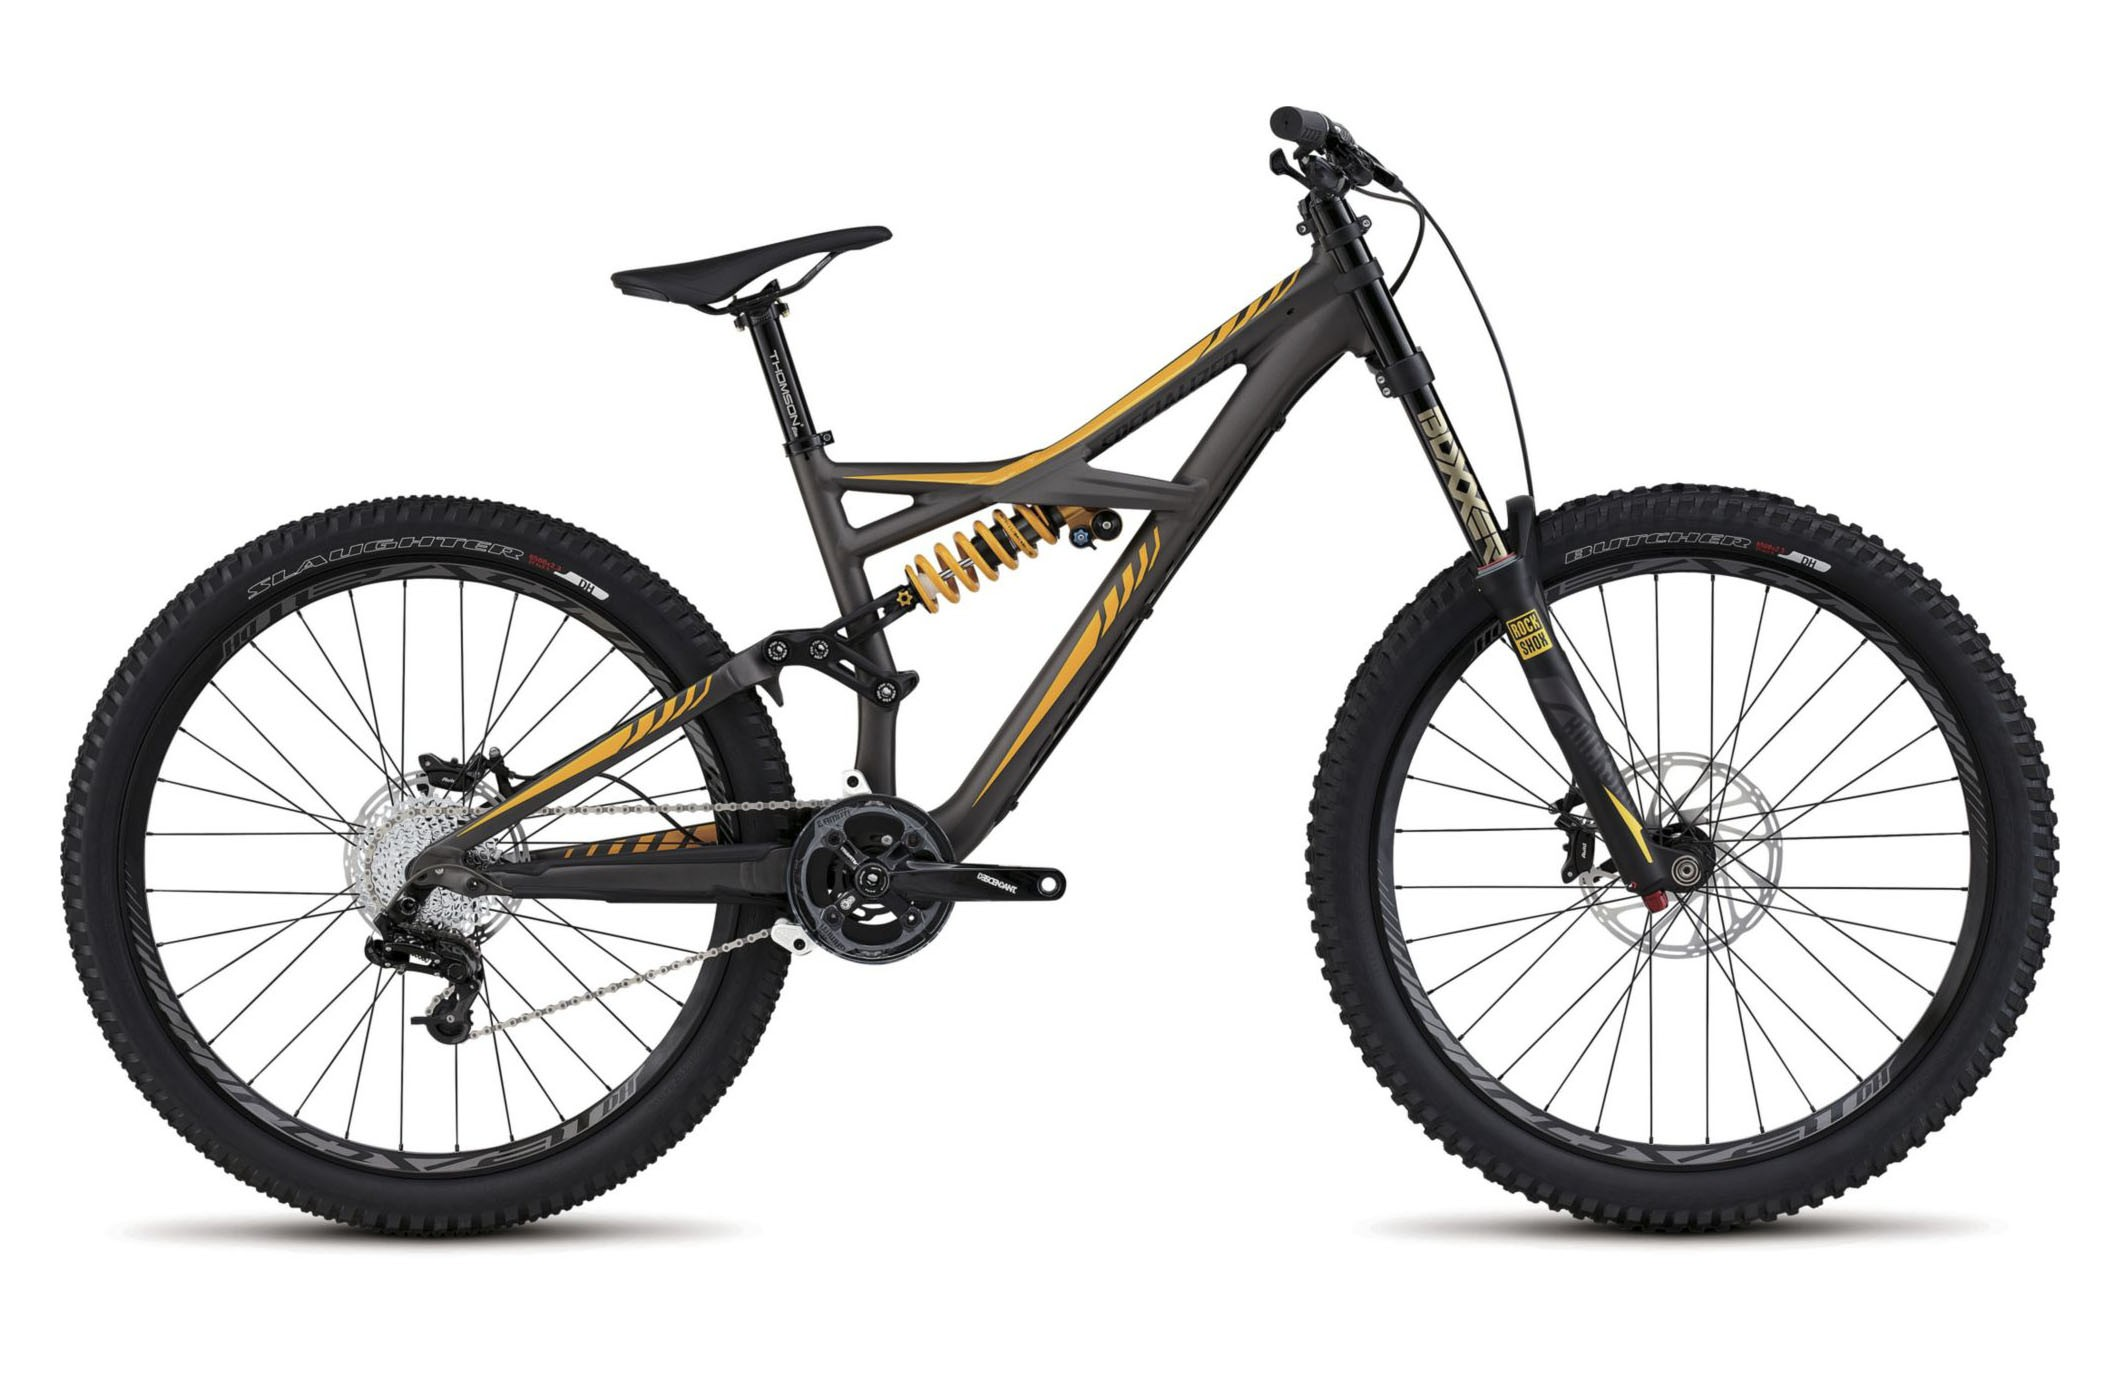 Горный велосипед Specialized Enduro Expert EVO 650b (2016)